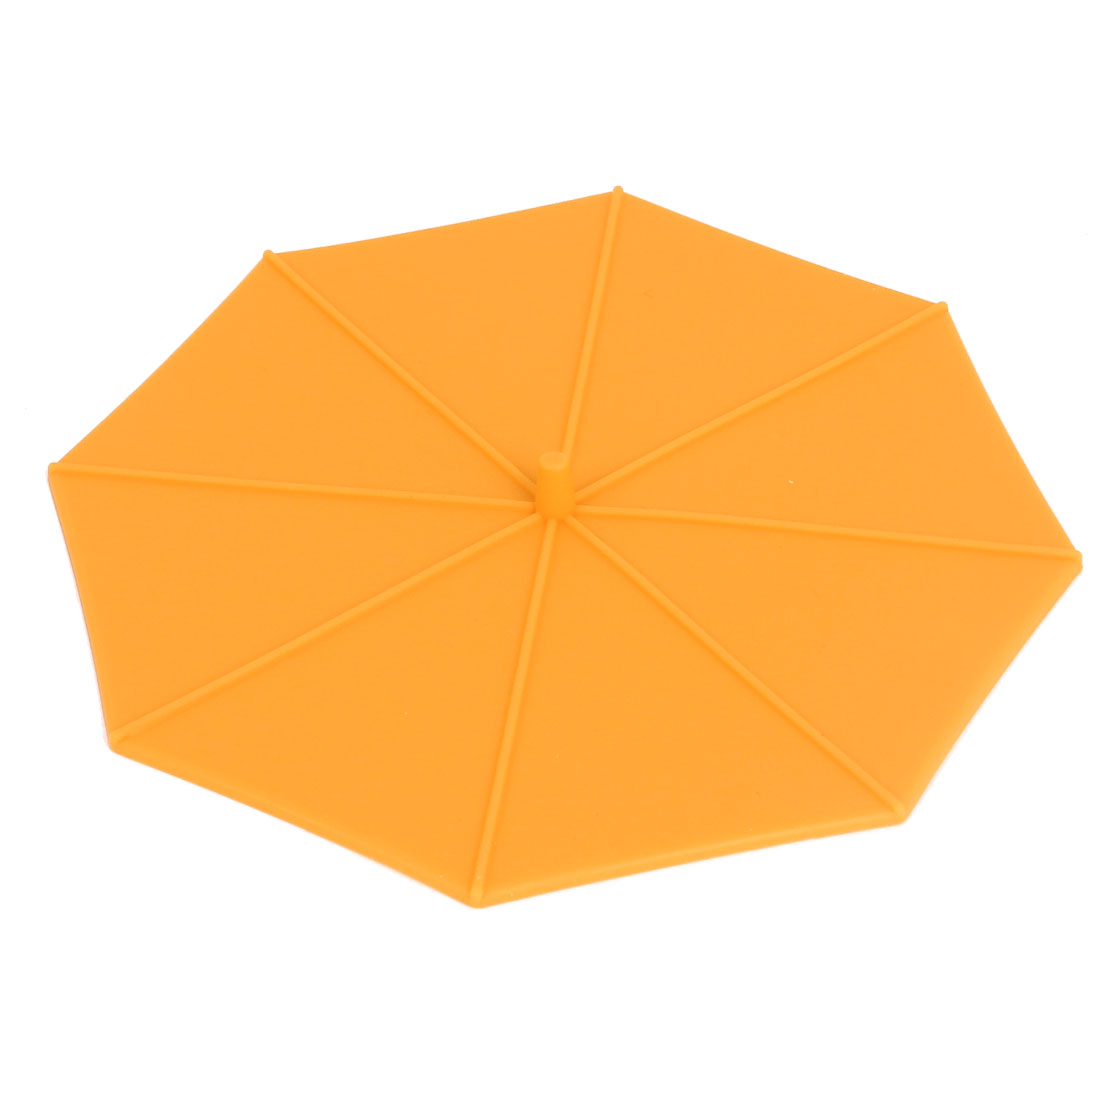 Umbrella Shape Coffe Tea Water Cup Silicone Seal Airtight Cover Cap Lip Orange